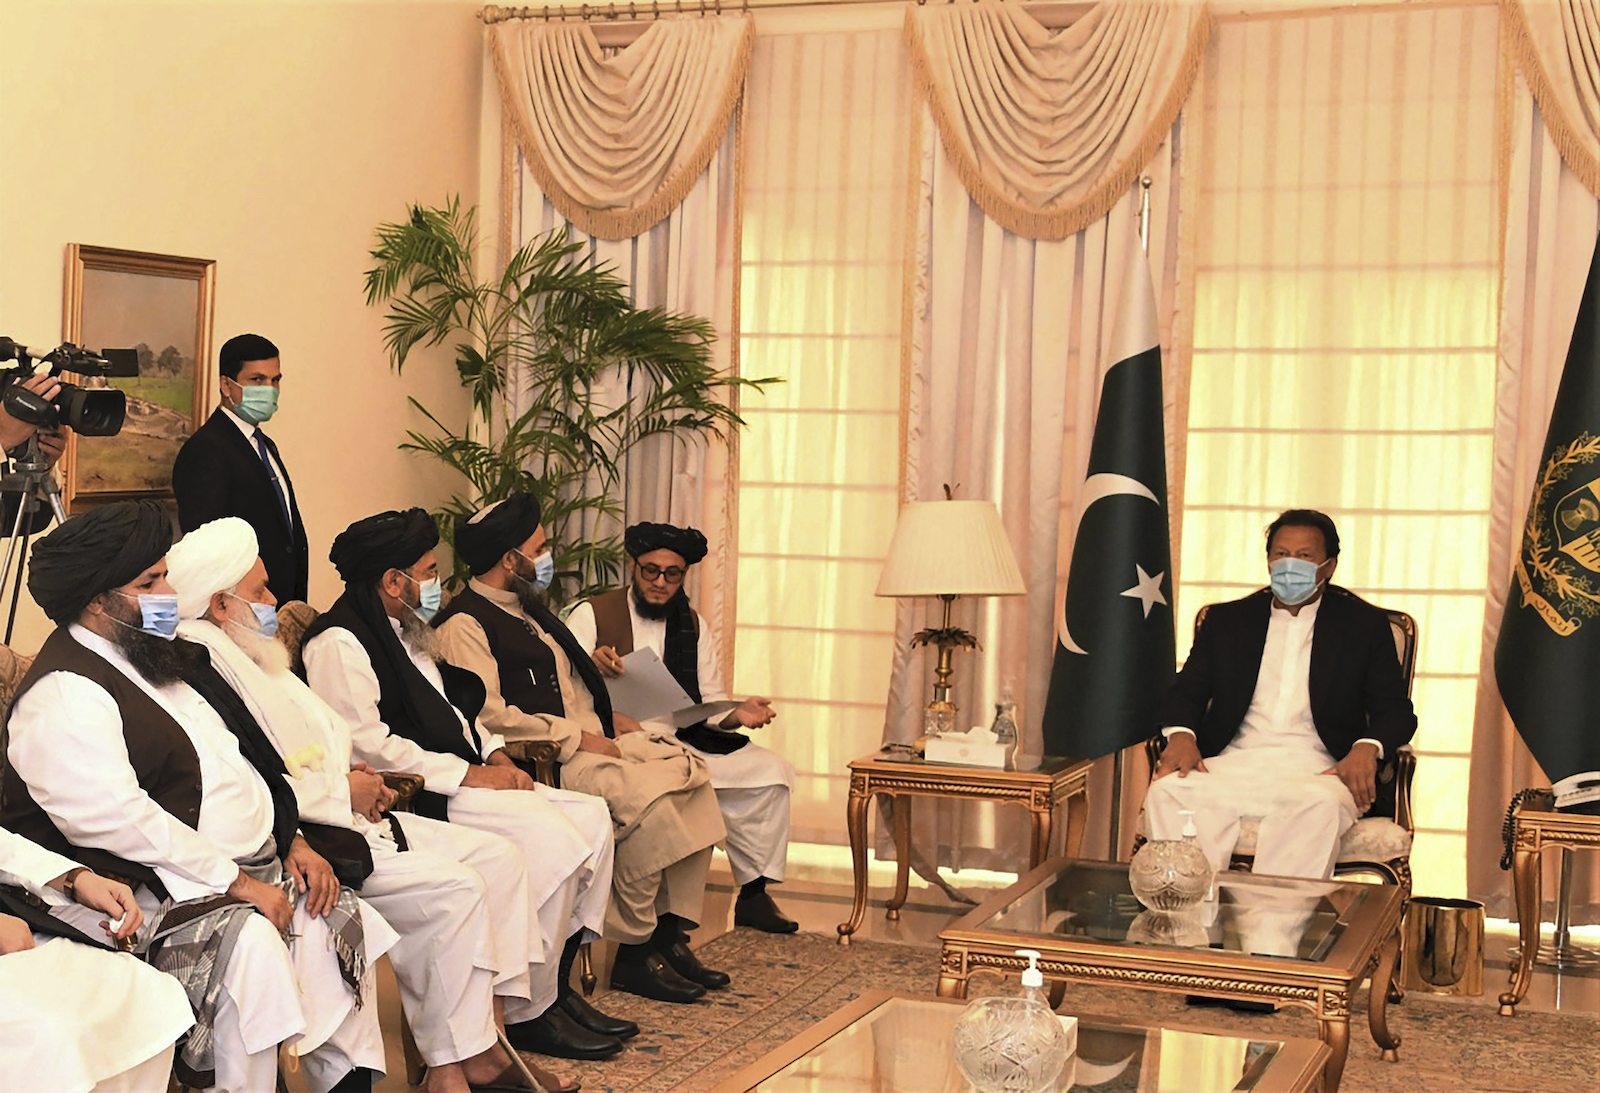 Pakistani Prime Minister Imran Khan (R) meets with Taliban co-founder Mullah Abdul Ghani Baradar (2d from the window on the left side of the picture) and his delegation in Islamabad on December 18, 2020. Photo: AFP / Pakistan Prime Minister Office